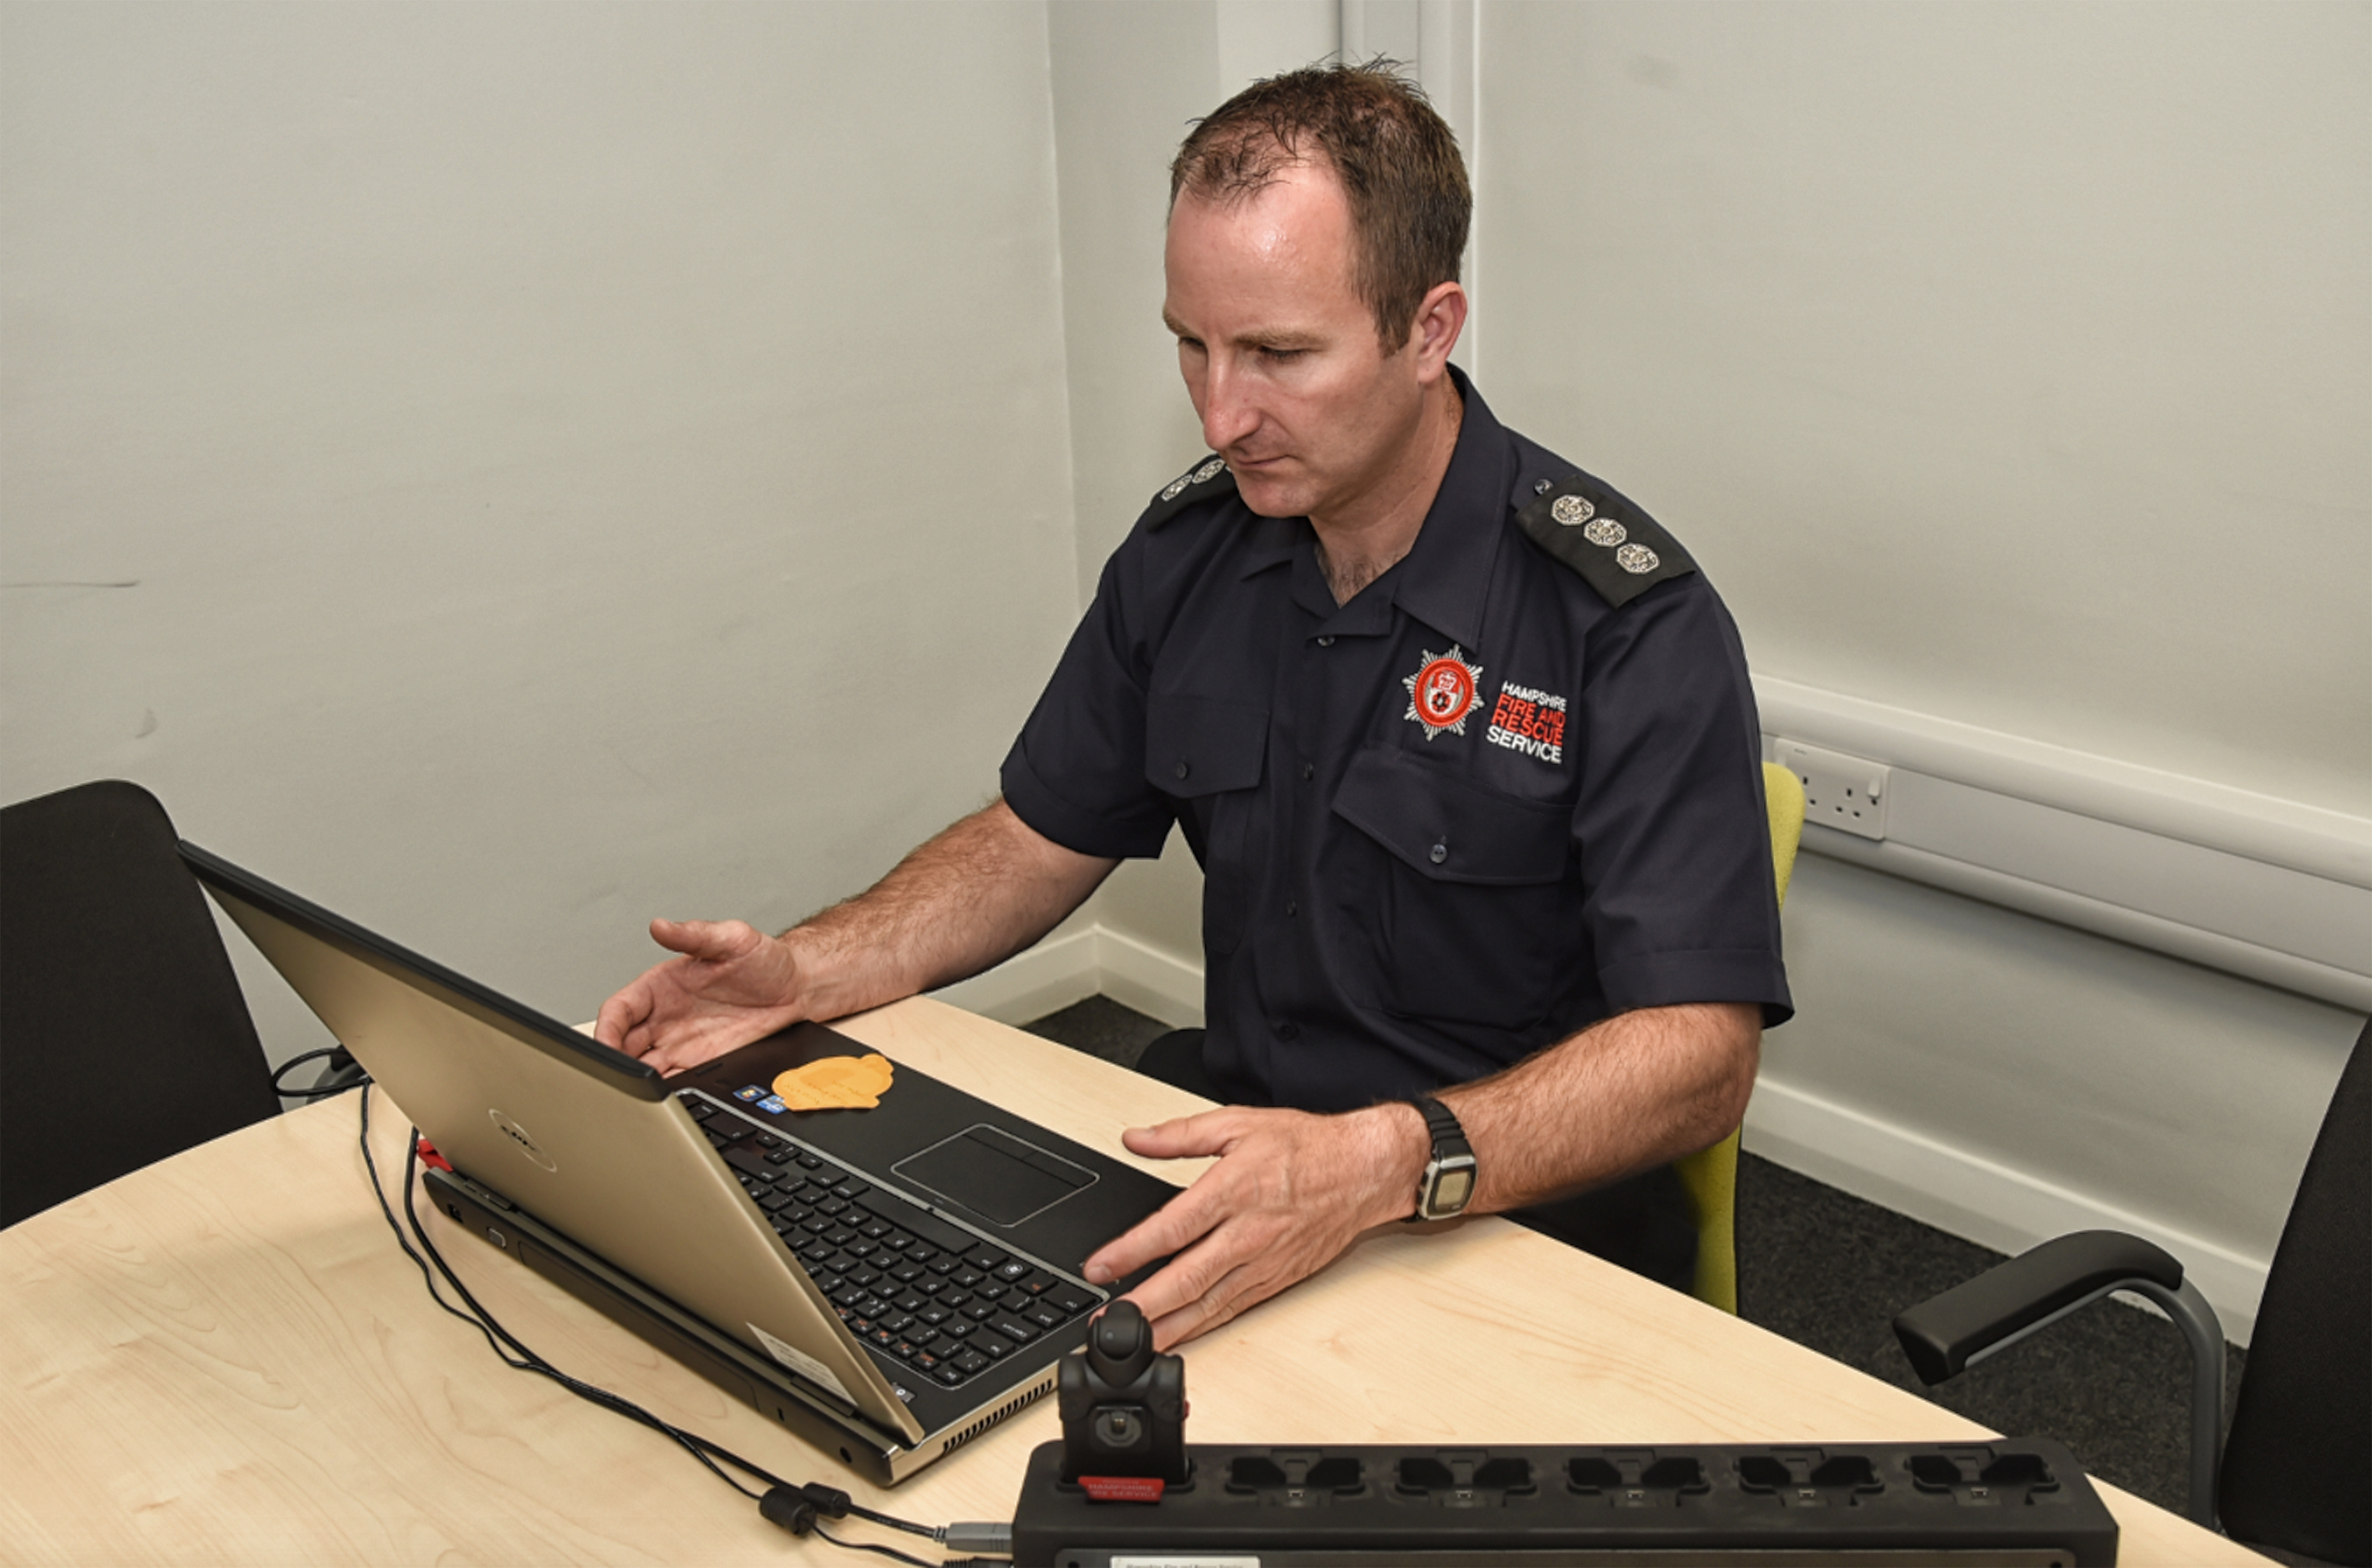 Hampshire firefighters to wear cameras in UK first